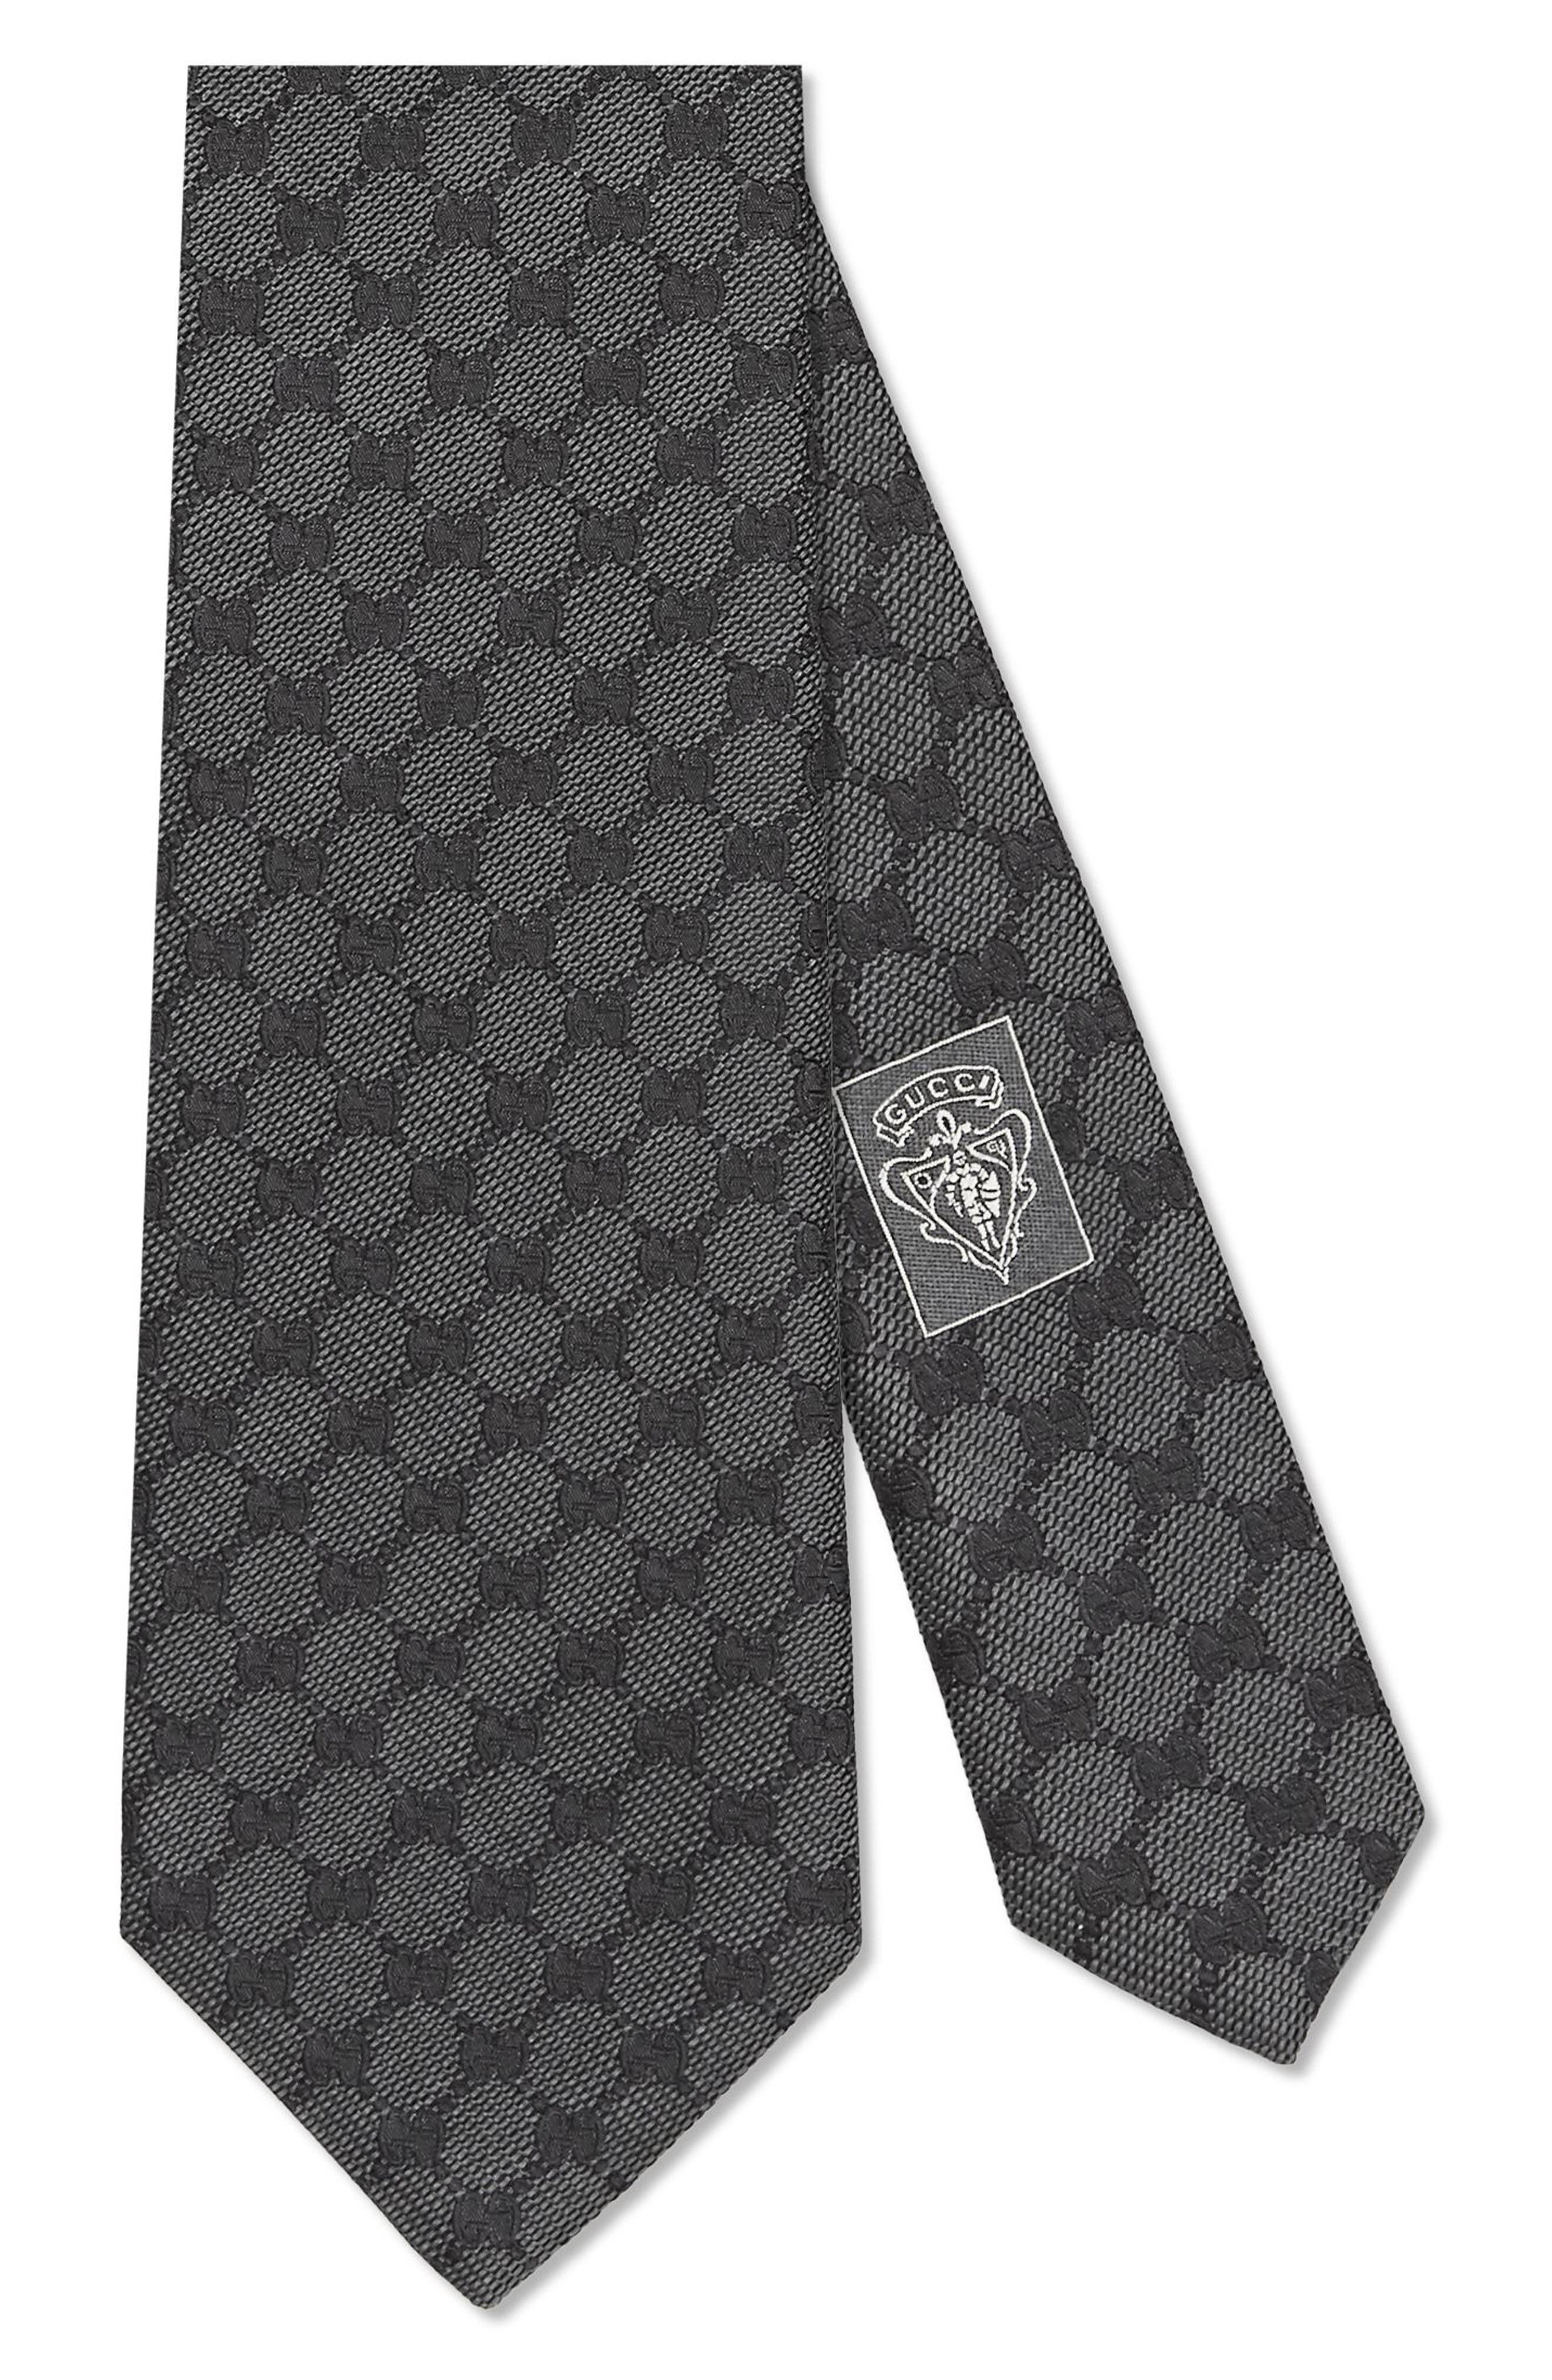 Arend Print Silk Tie,                         Main,                         color, 022